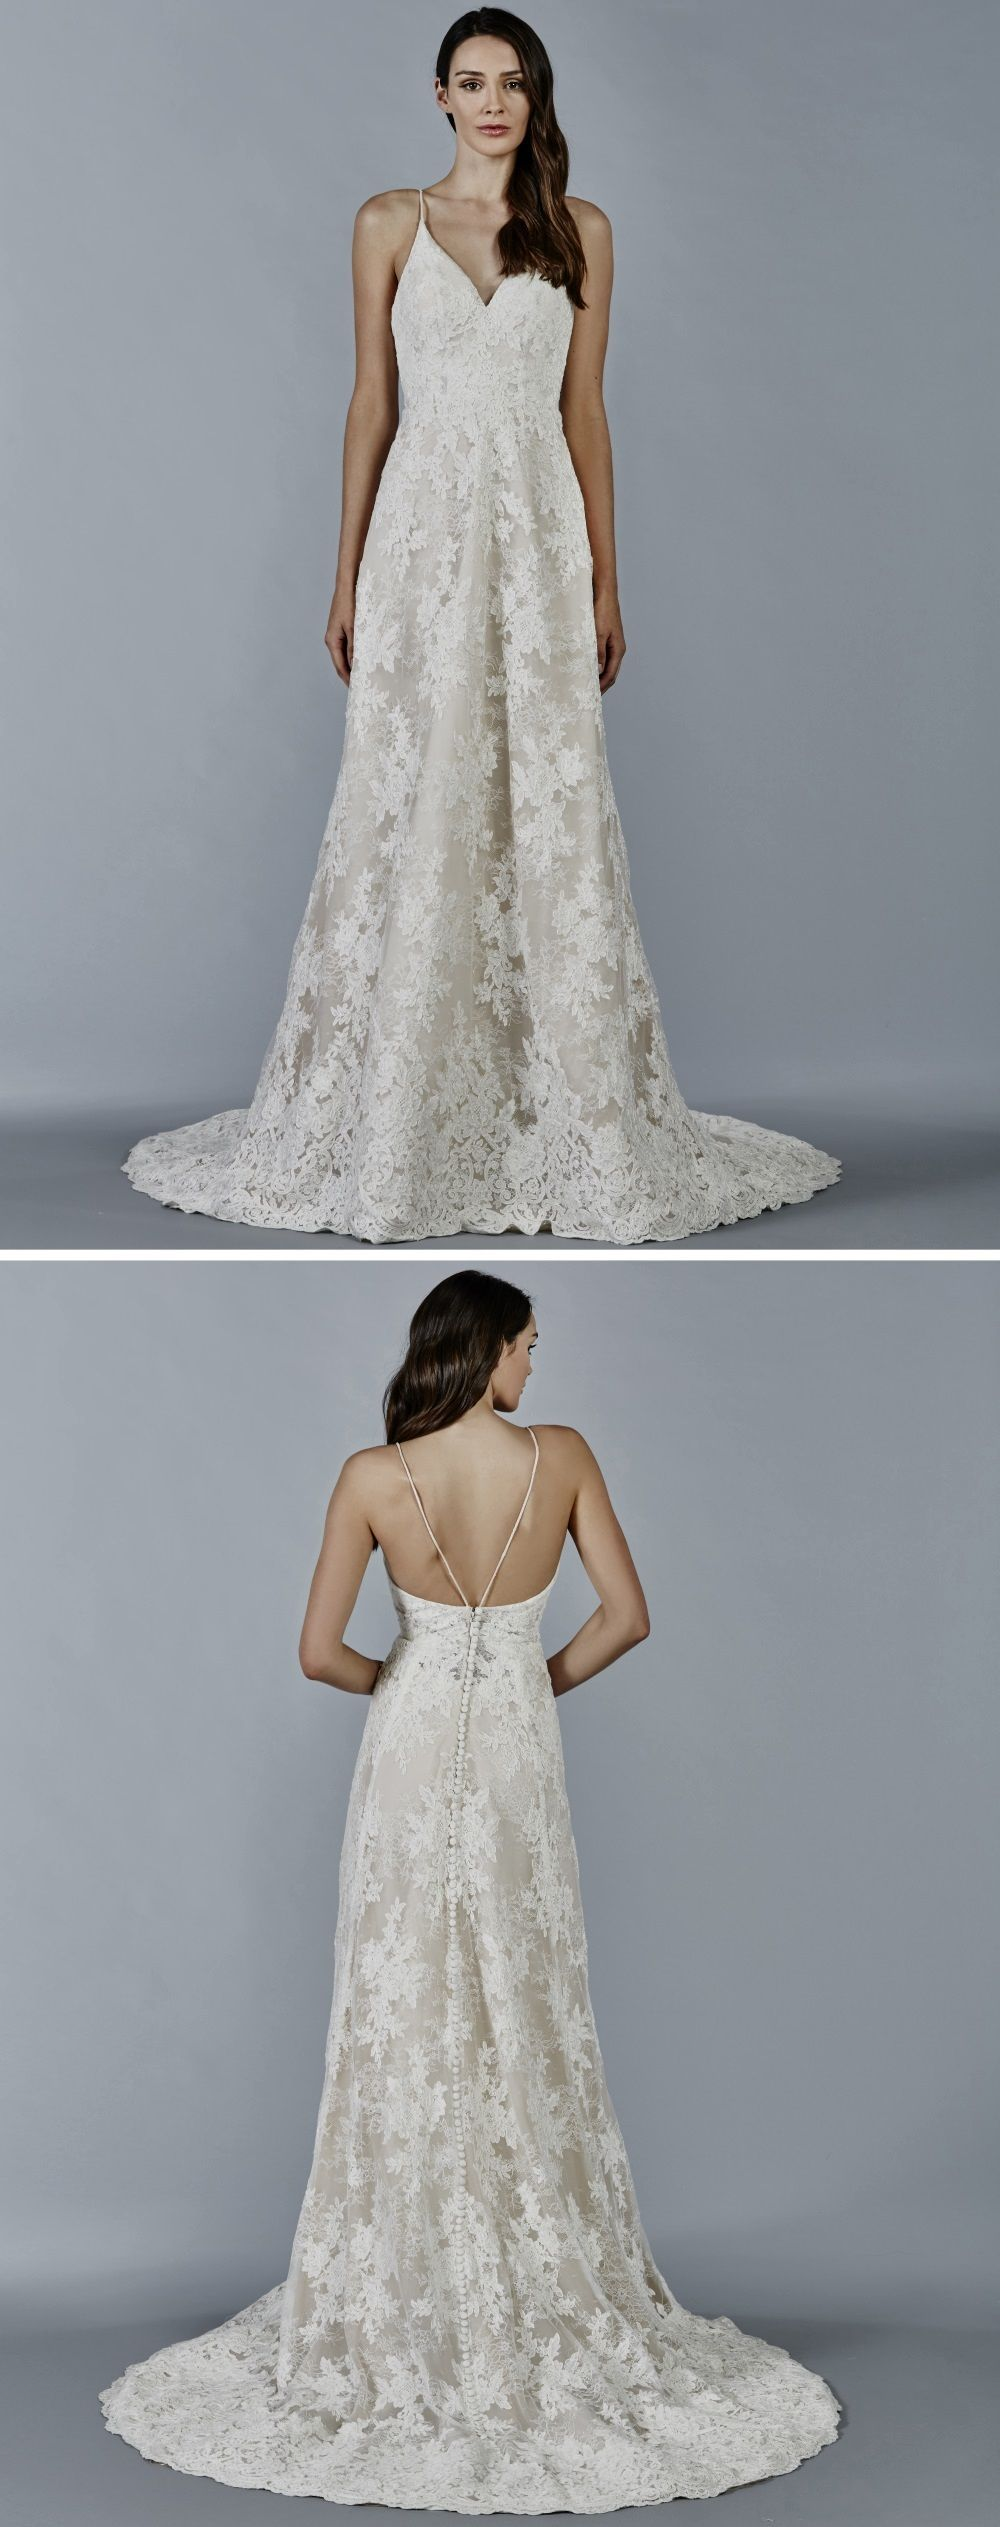 Maia wedding dress by kelly faetanini chantilly lace and